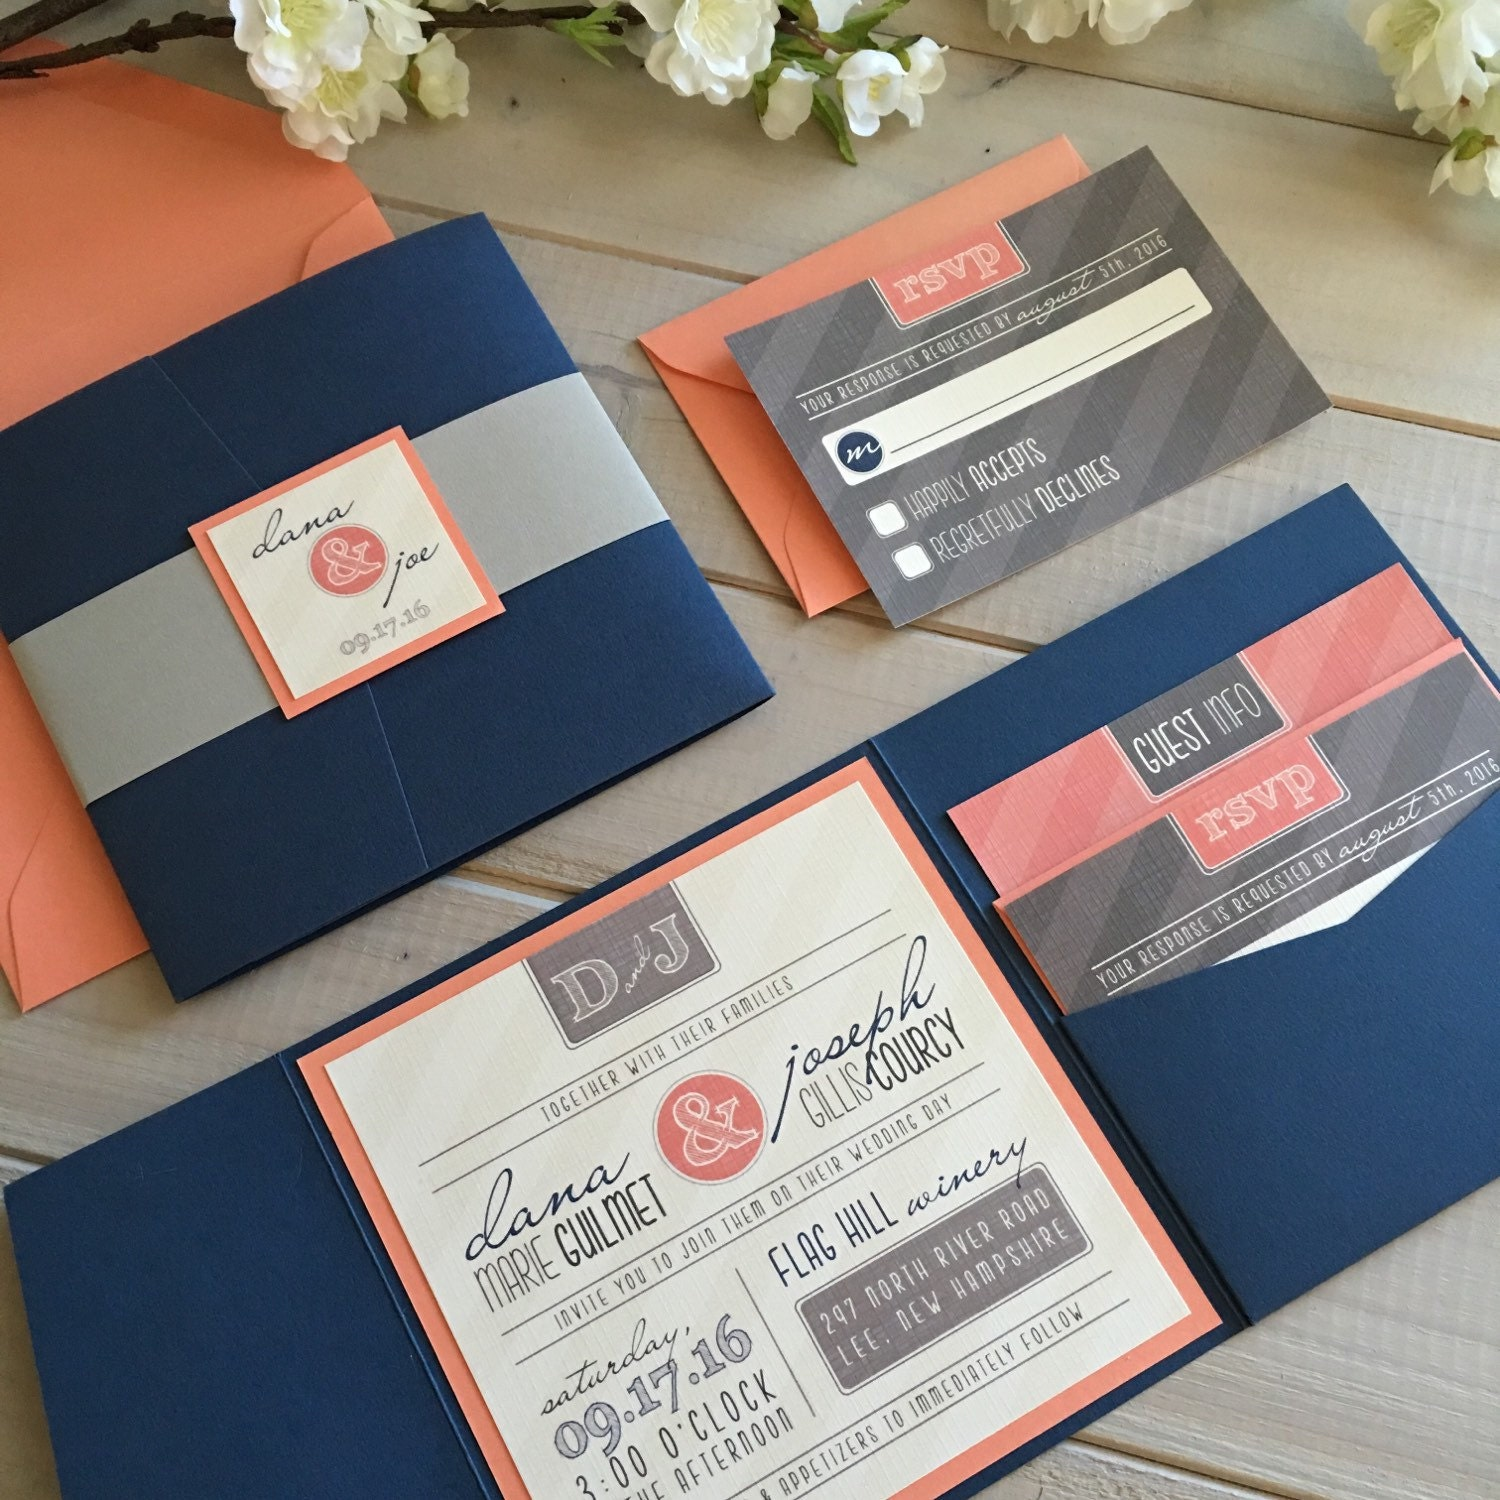 Modern wedding invitations navy and coral wedding for Royal blue and coral wedding invitations